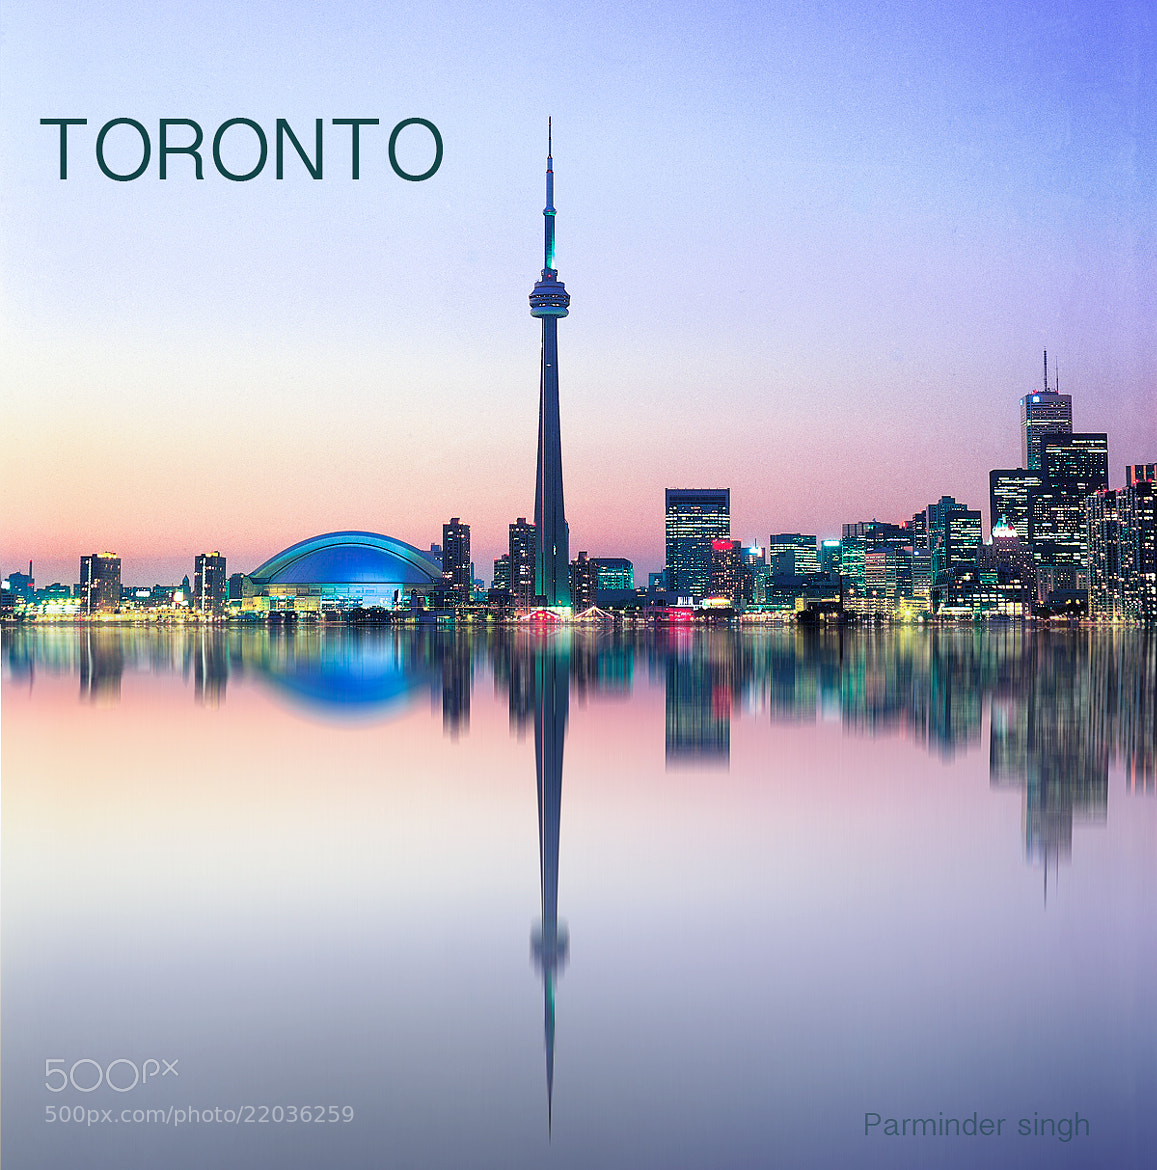 Photograph TORONTO by parminder singh on 500px